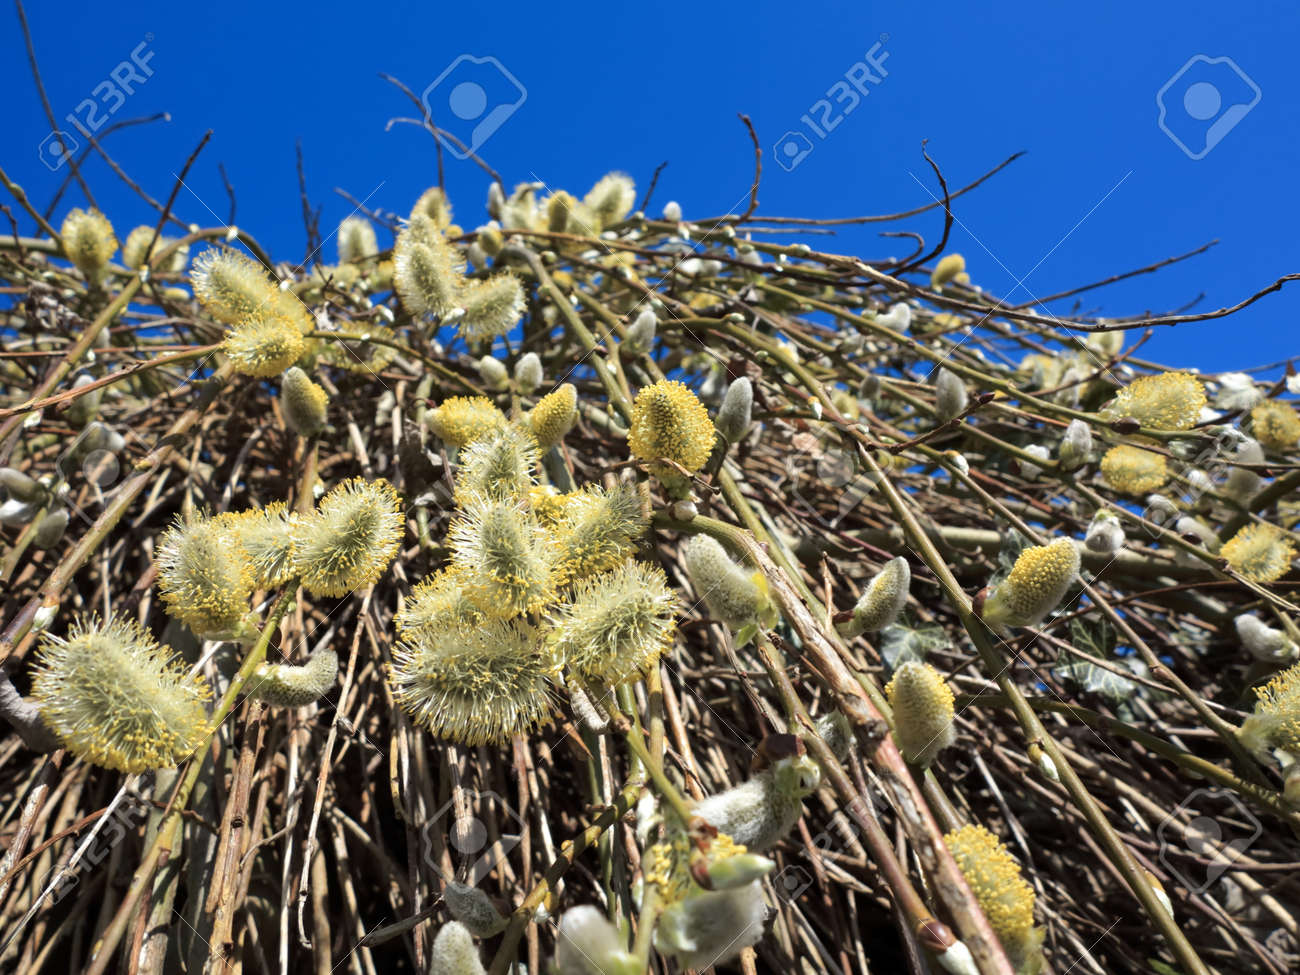 pussy willow tree branches with catkins against blue sky stock photo - Pussy Willow Tree